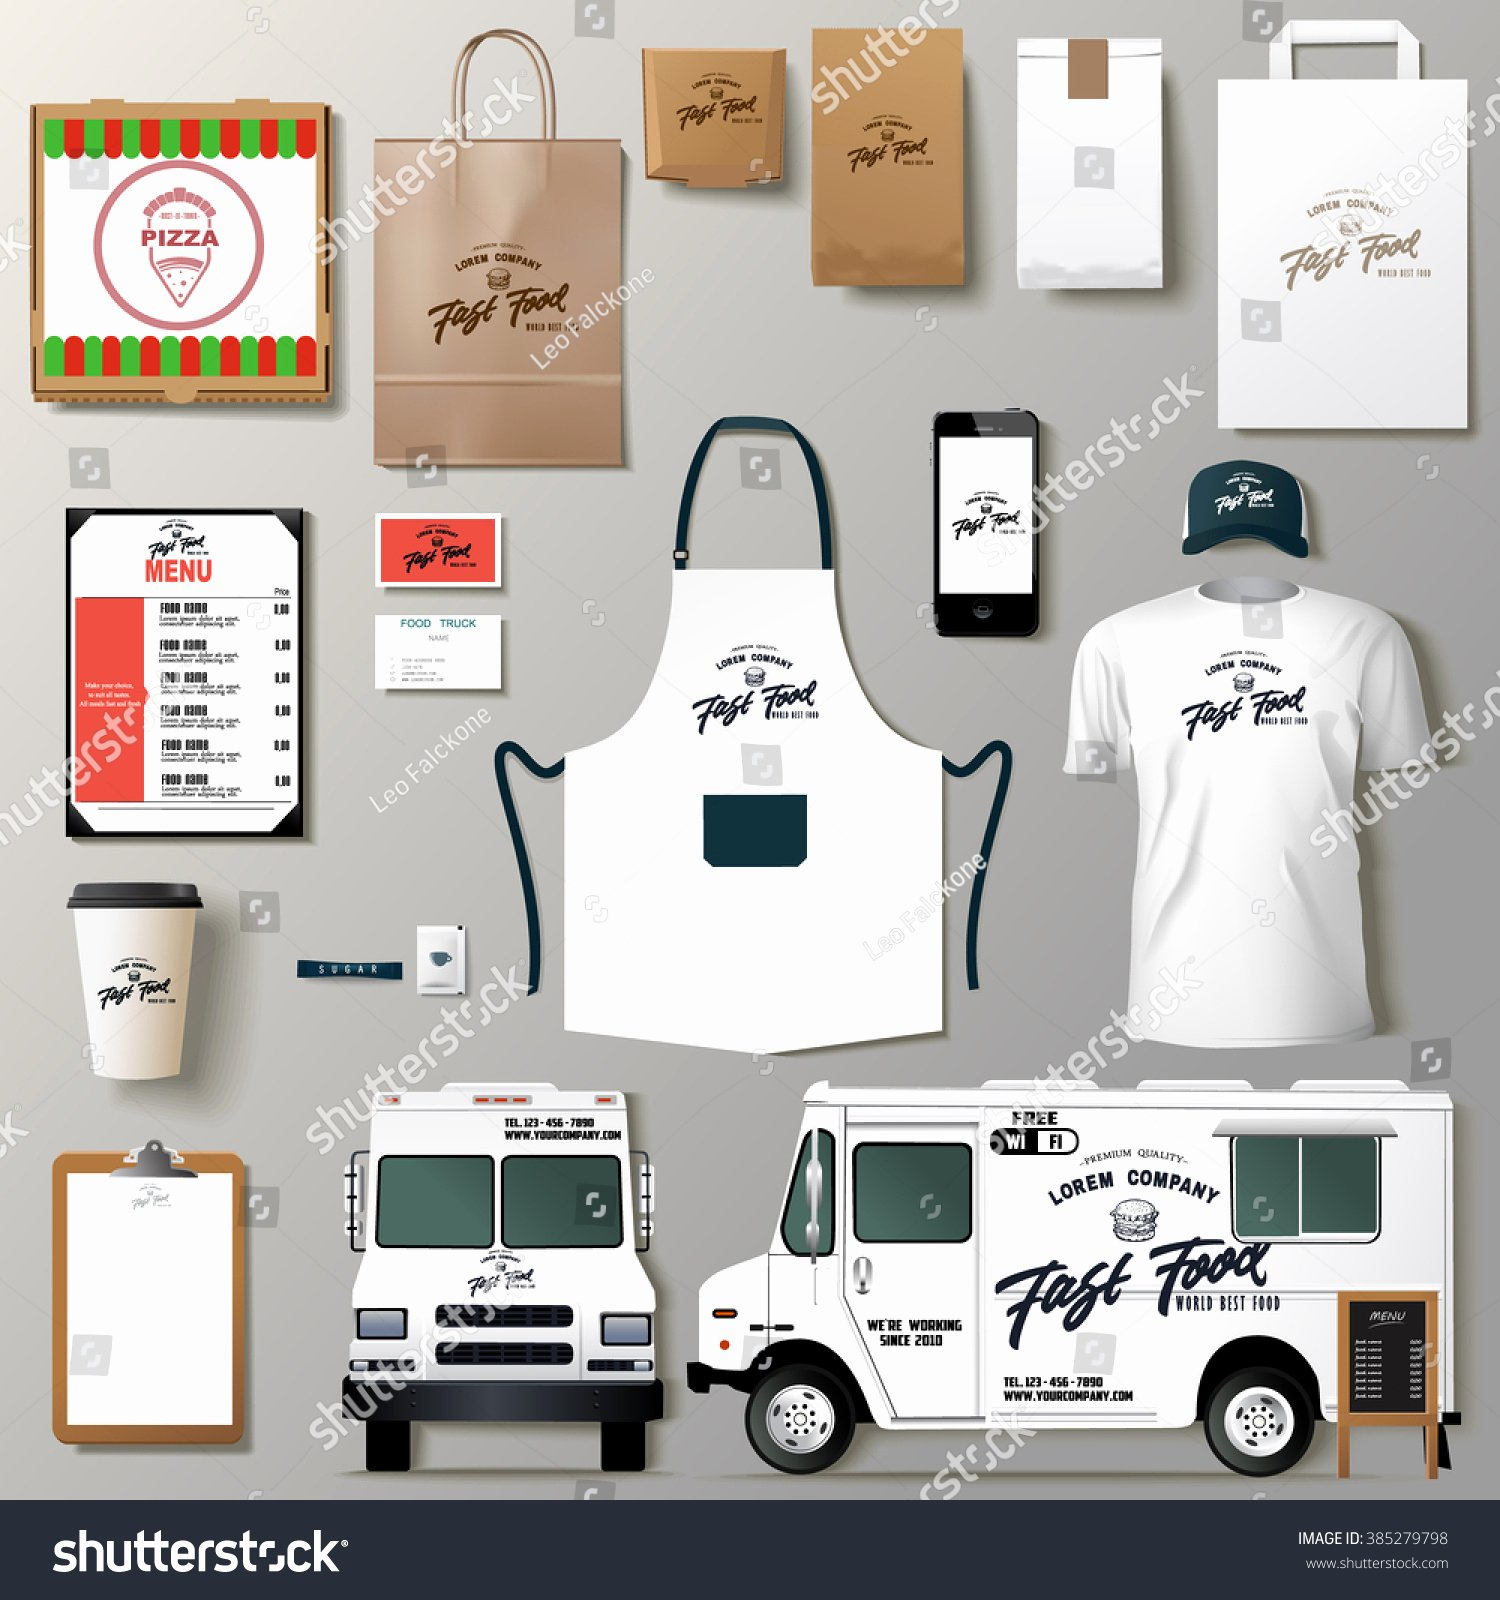 Food Truck Design Template Fresh Vector Food Truck Corporate Identity Template Stock Vector